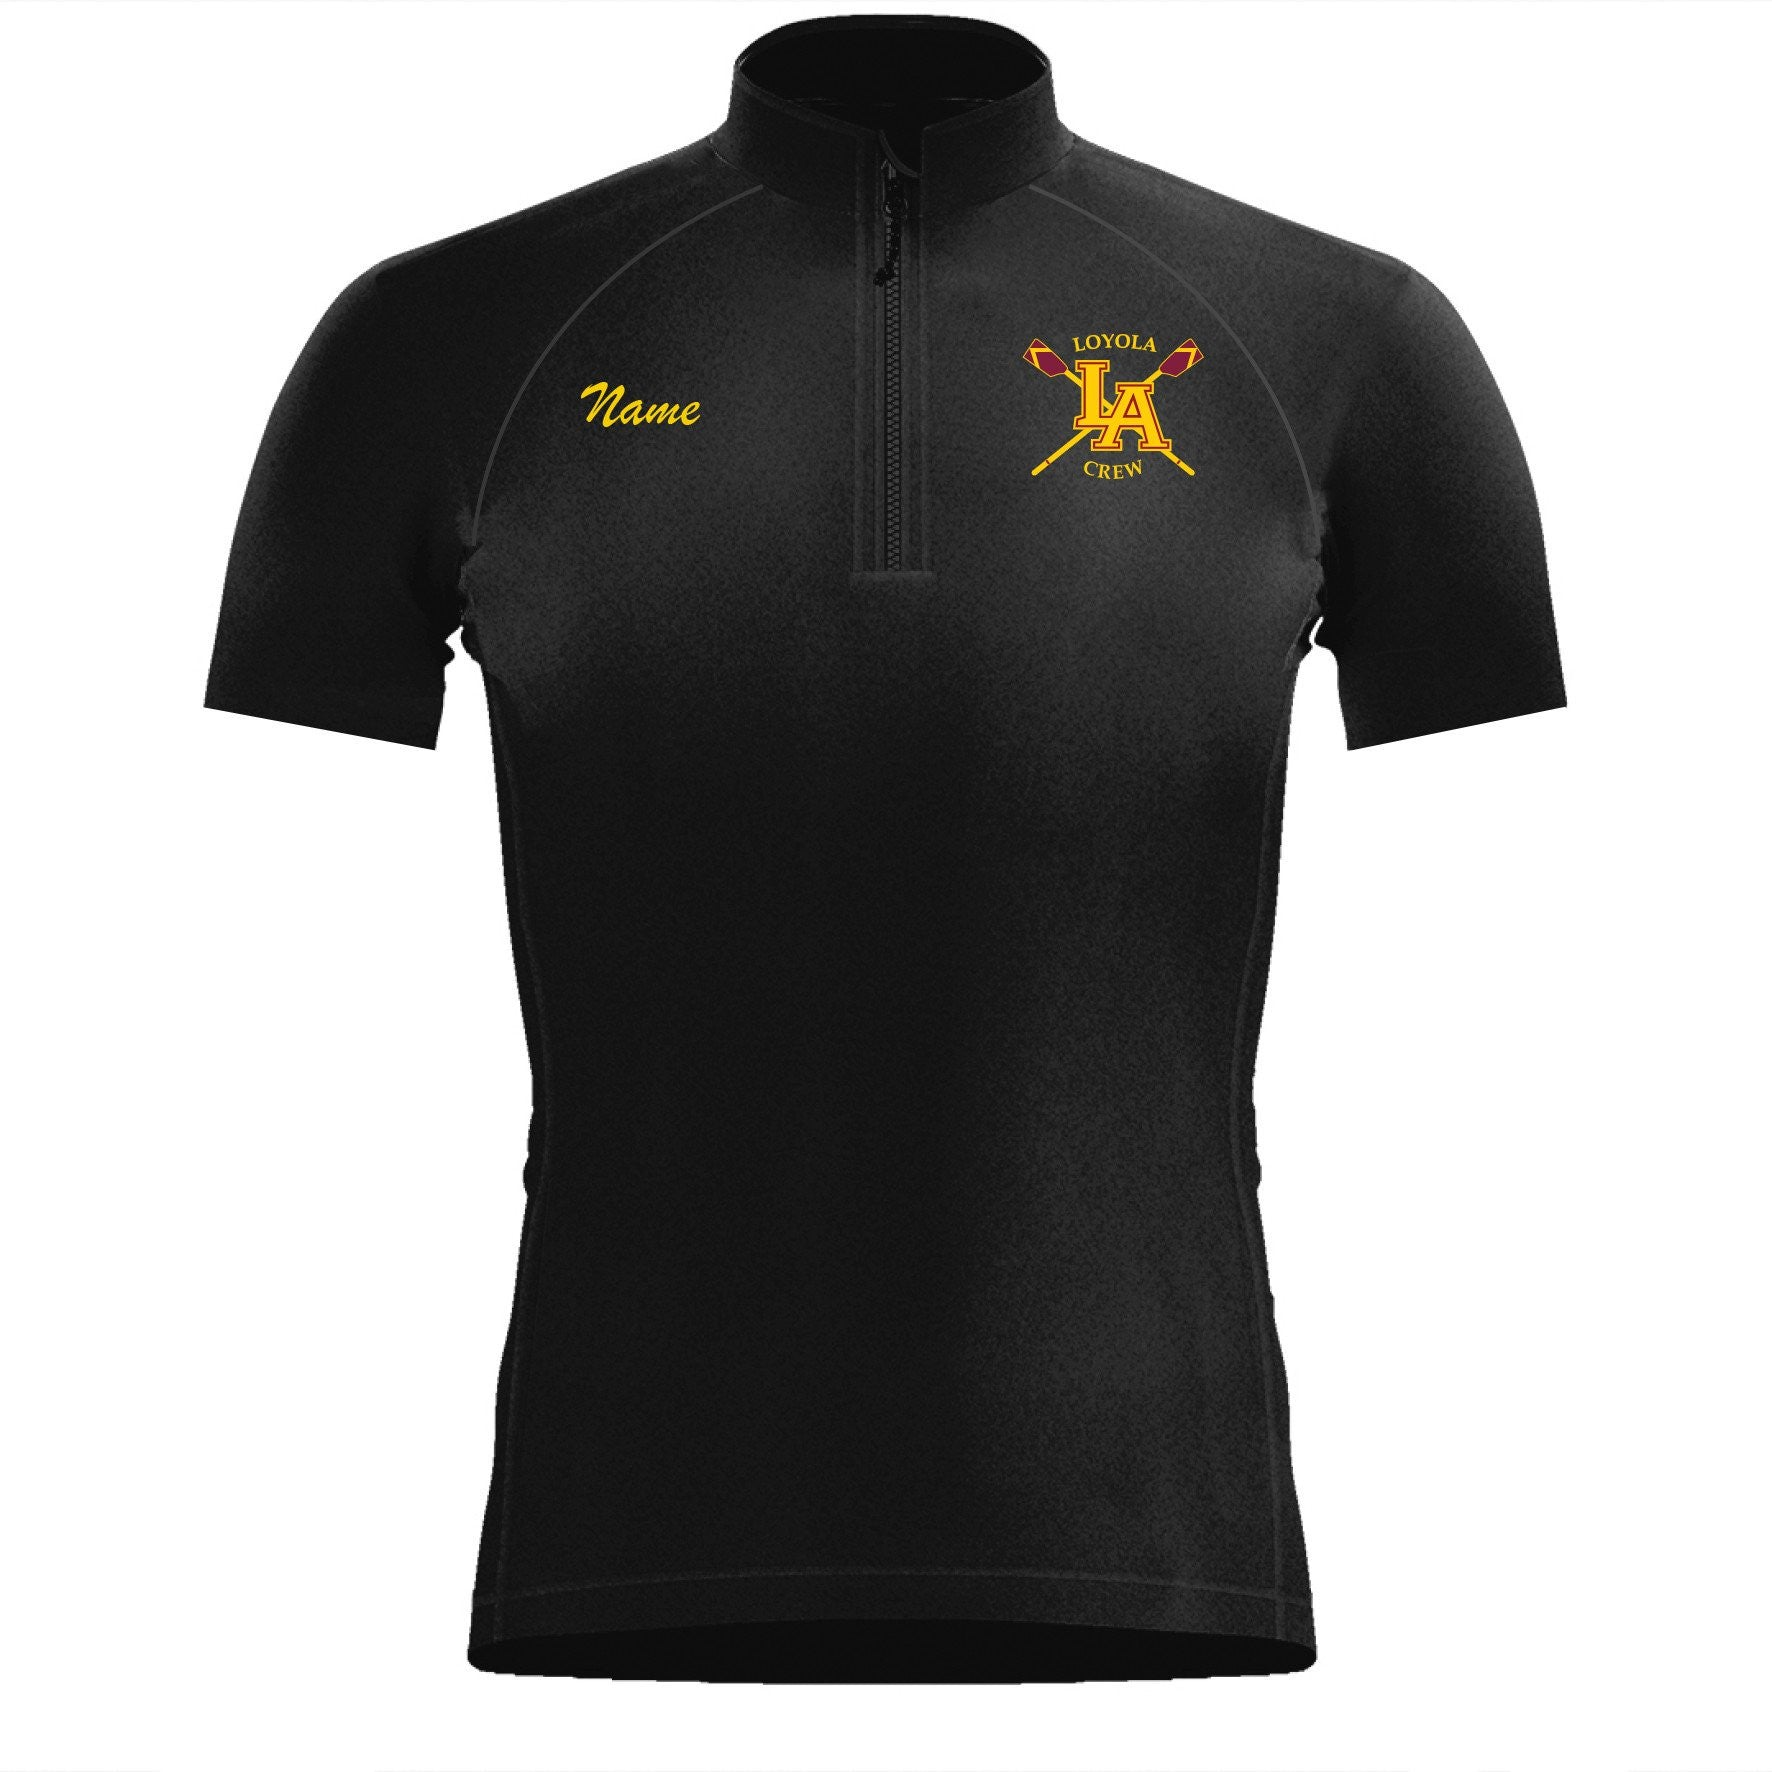 Short Sleeve Loyola Crew Warm-Up Shirt